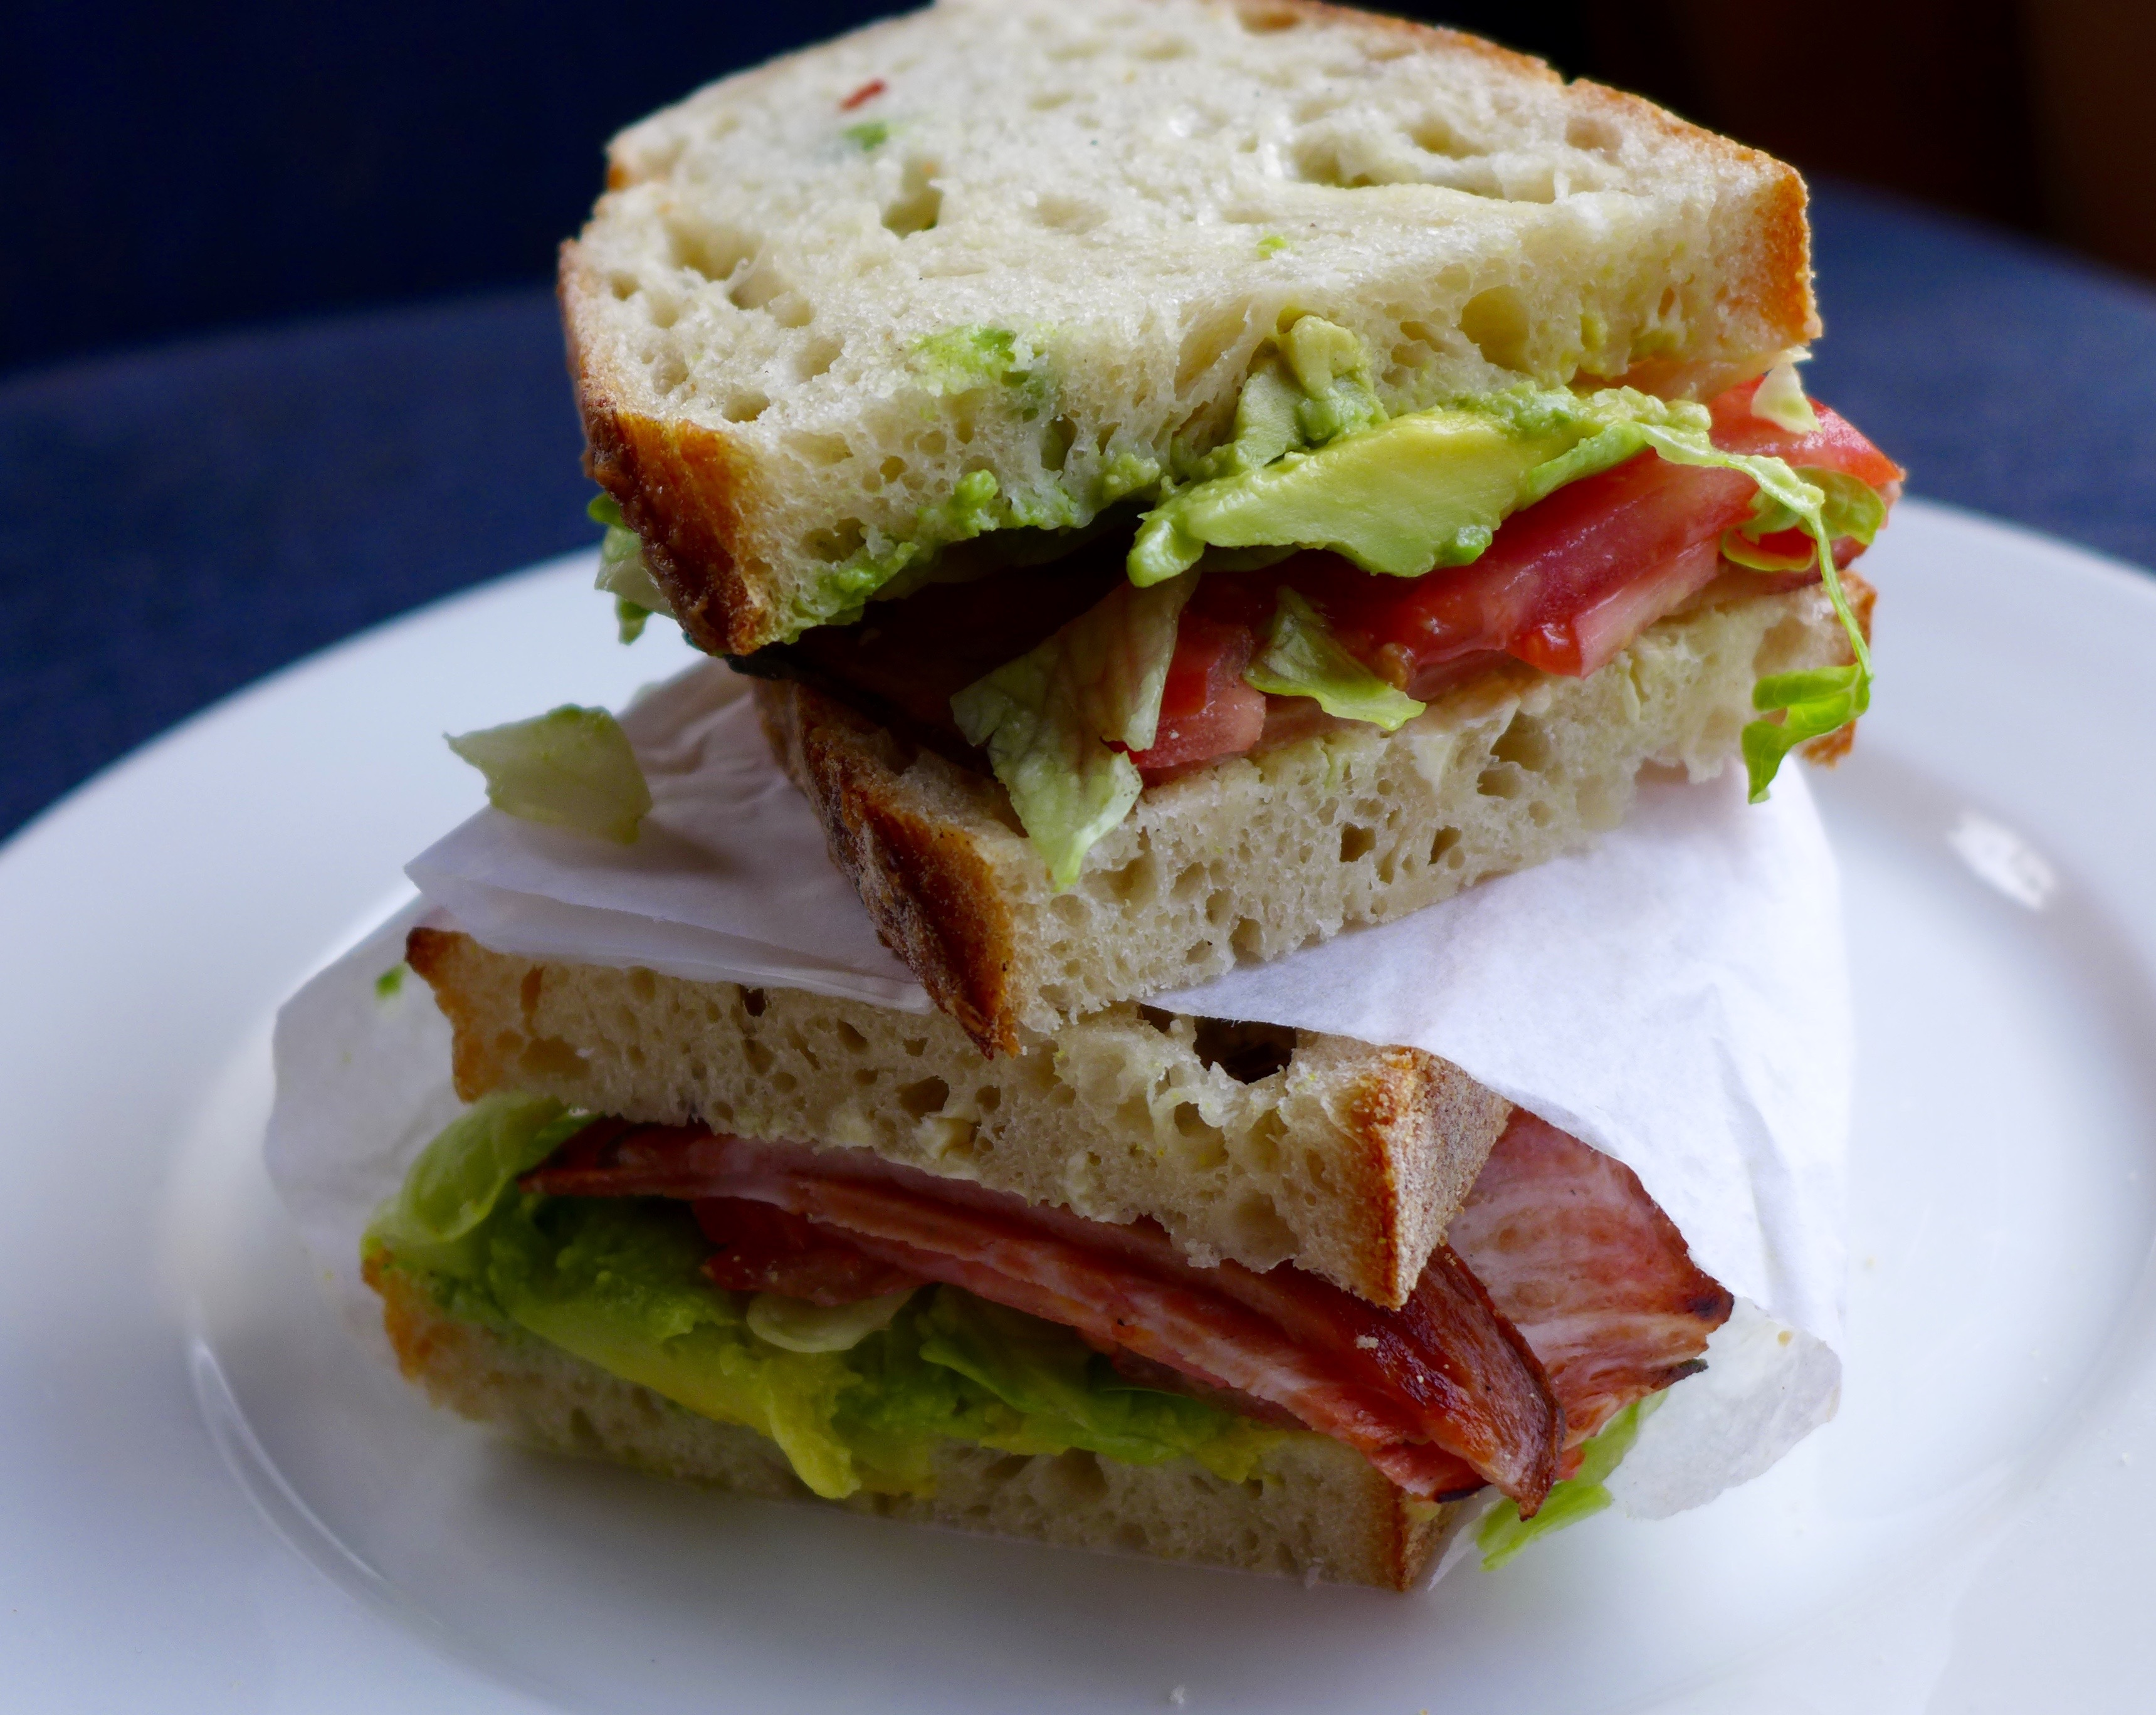 eat all the smith & deli sandwiches – #14, the better bundy